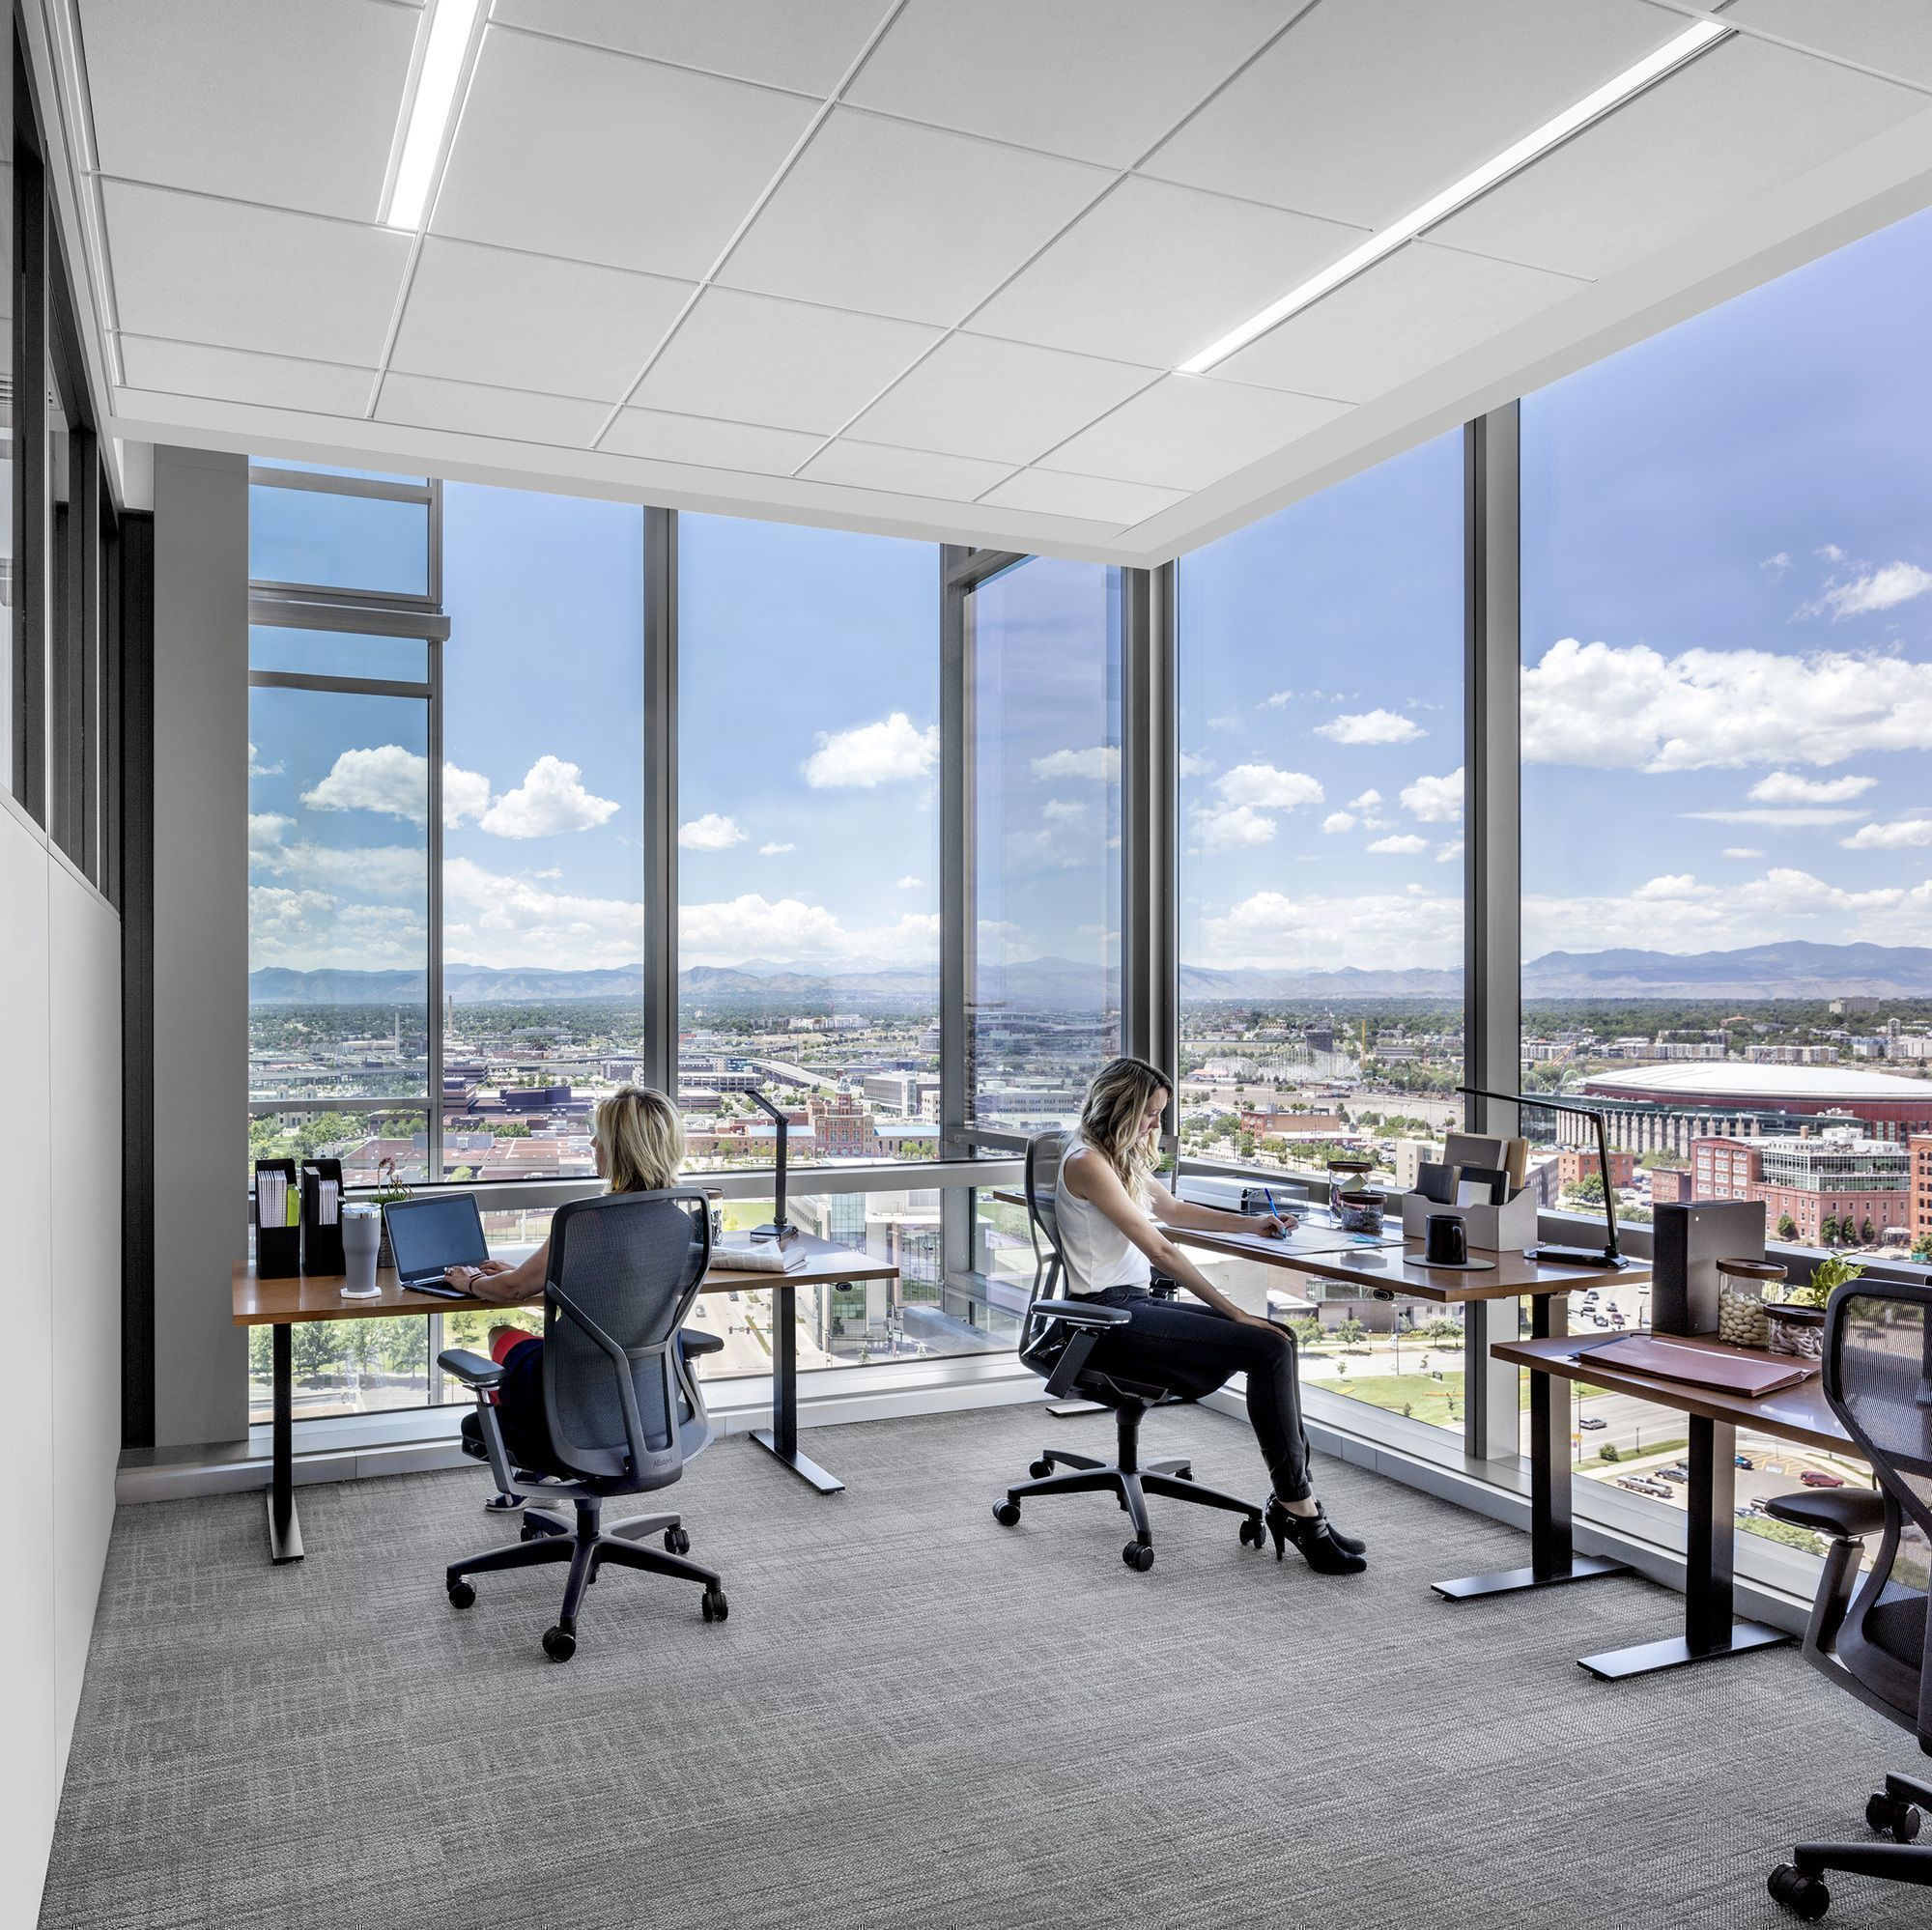 Firmspace with two women working in downtown Denver